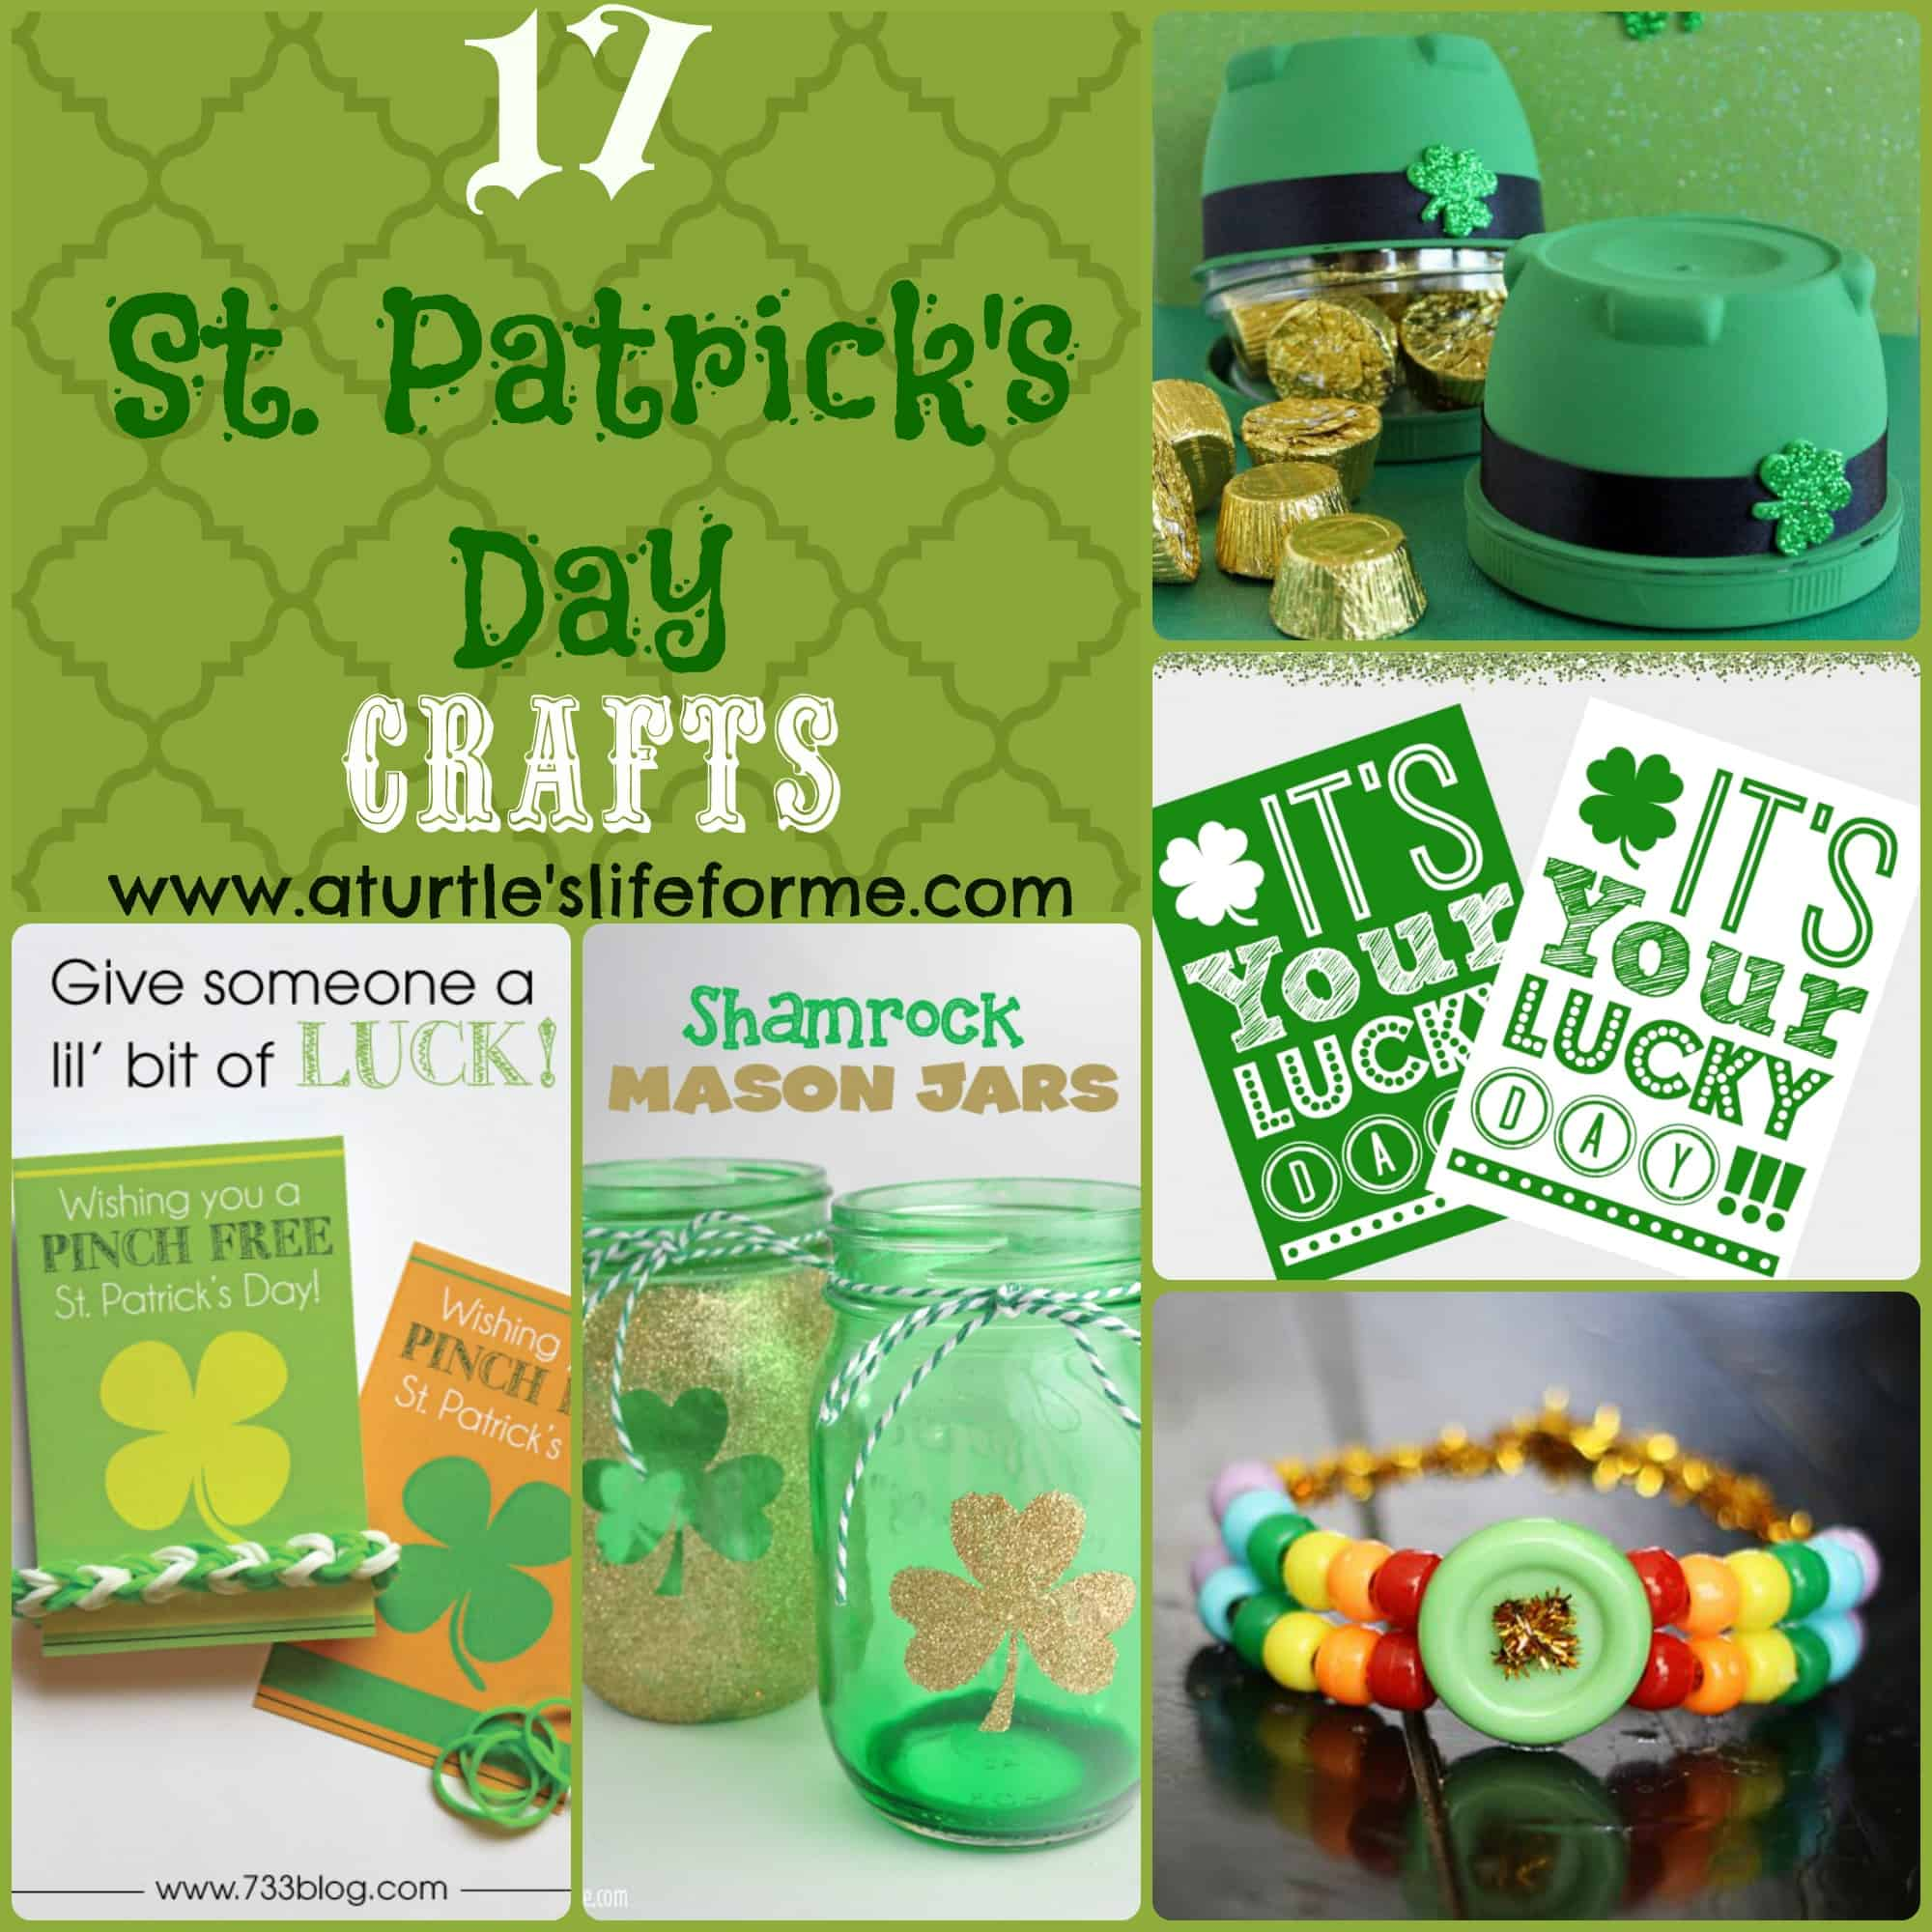 St. Patrick's Day Crafts!